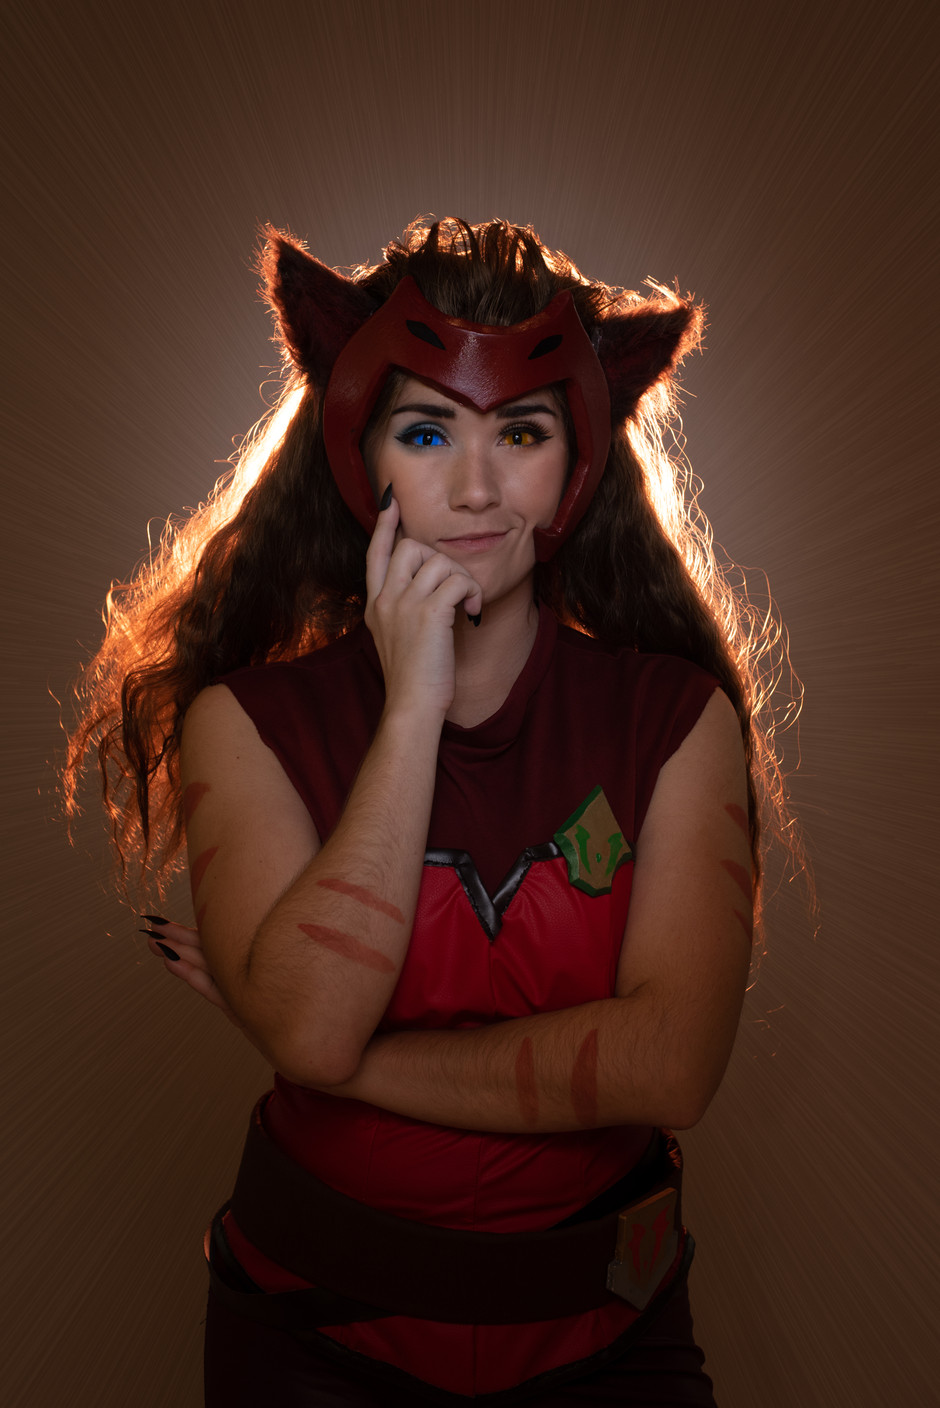 Cosplayer @indigomar.cosplay as Catra from Netflix's She-Ra and the Princesses of Power